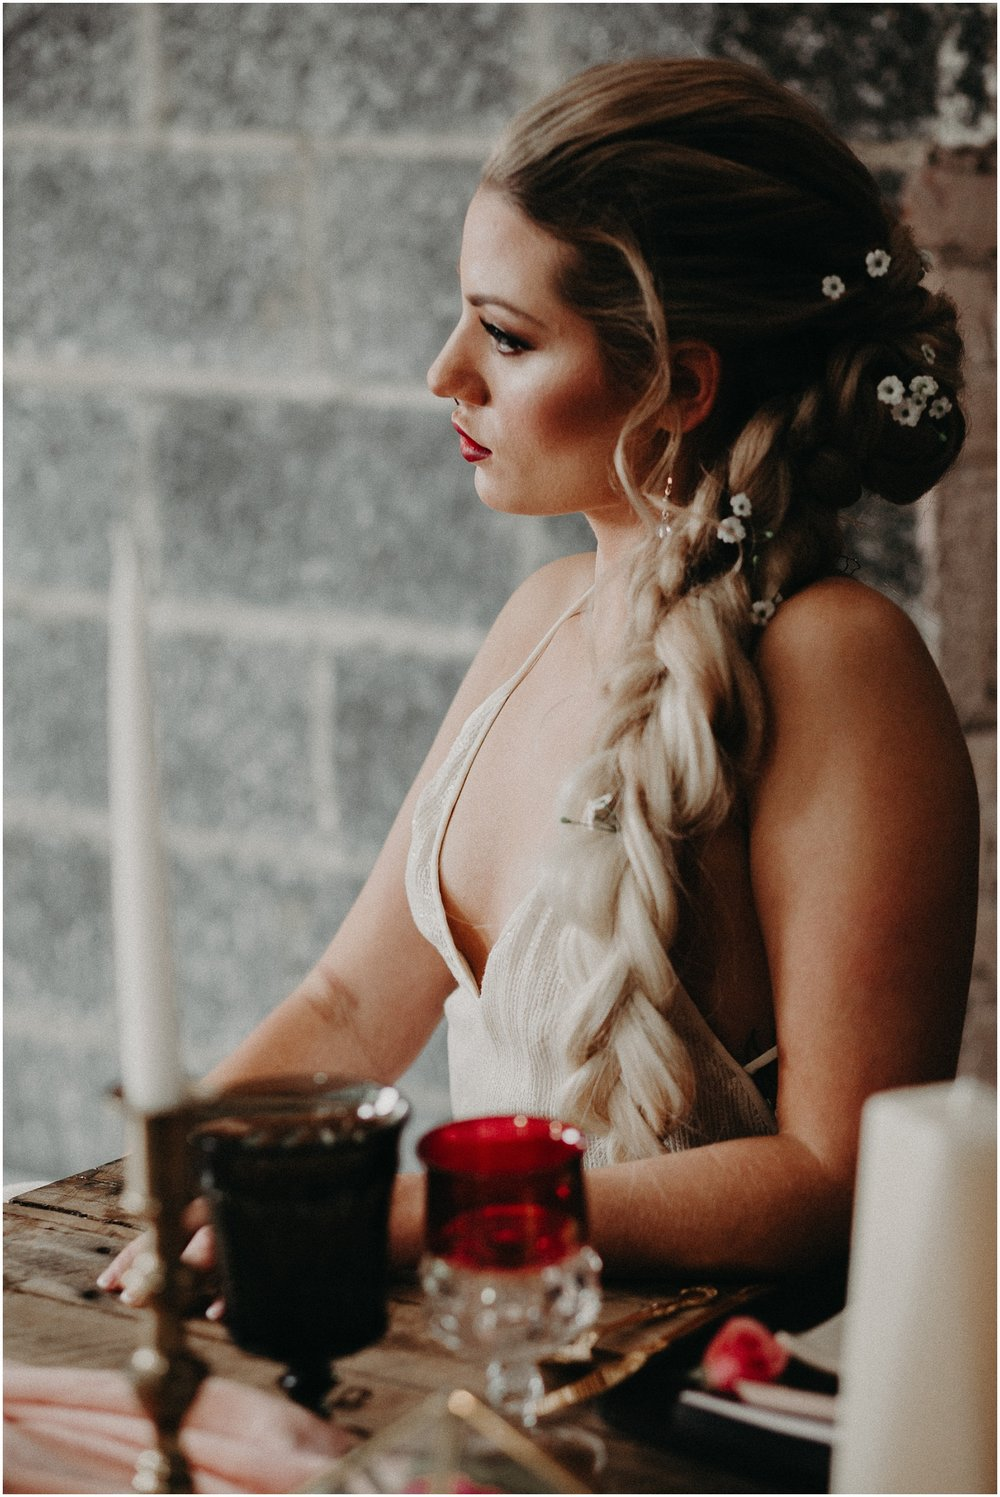 styled shoot-bridal portraits-portraits-bride-rock and roll-industrial-urban-wedding-inspiration-nj-new jersey-nyc-new york city-art-diy wedding_0030.jpg